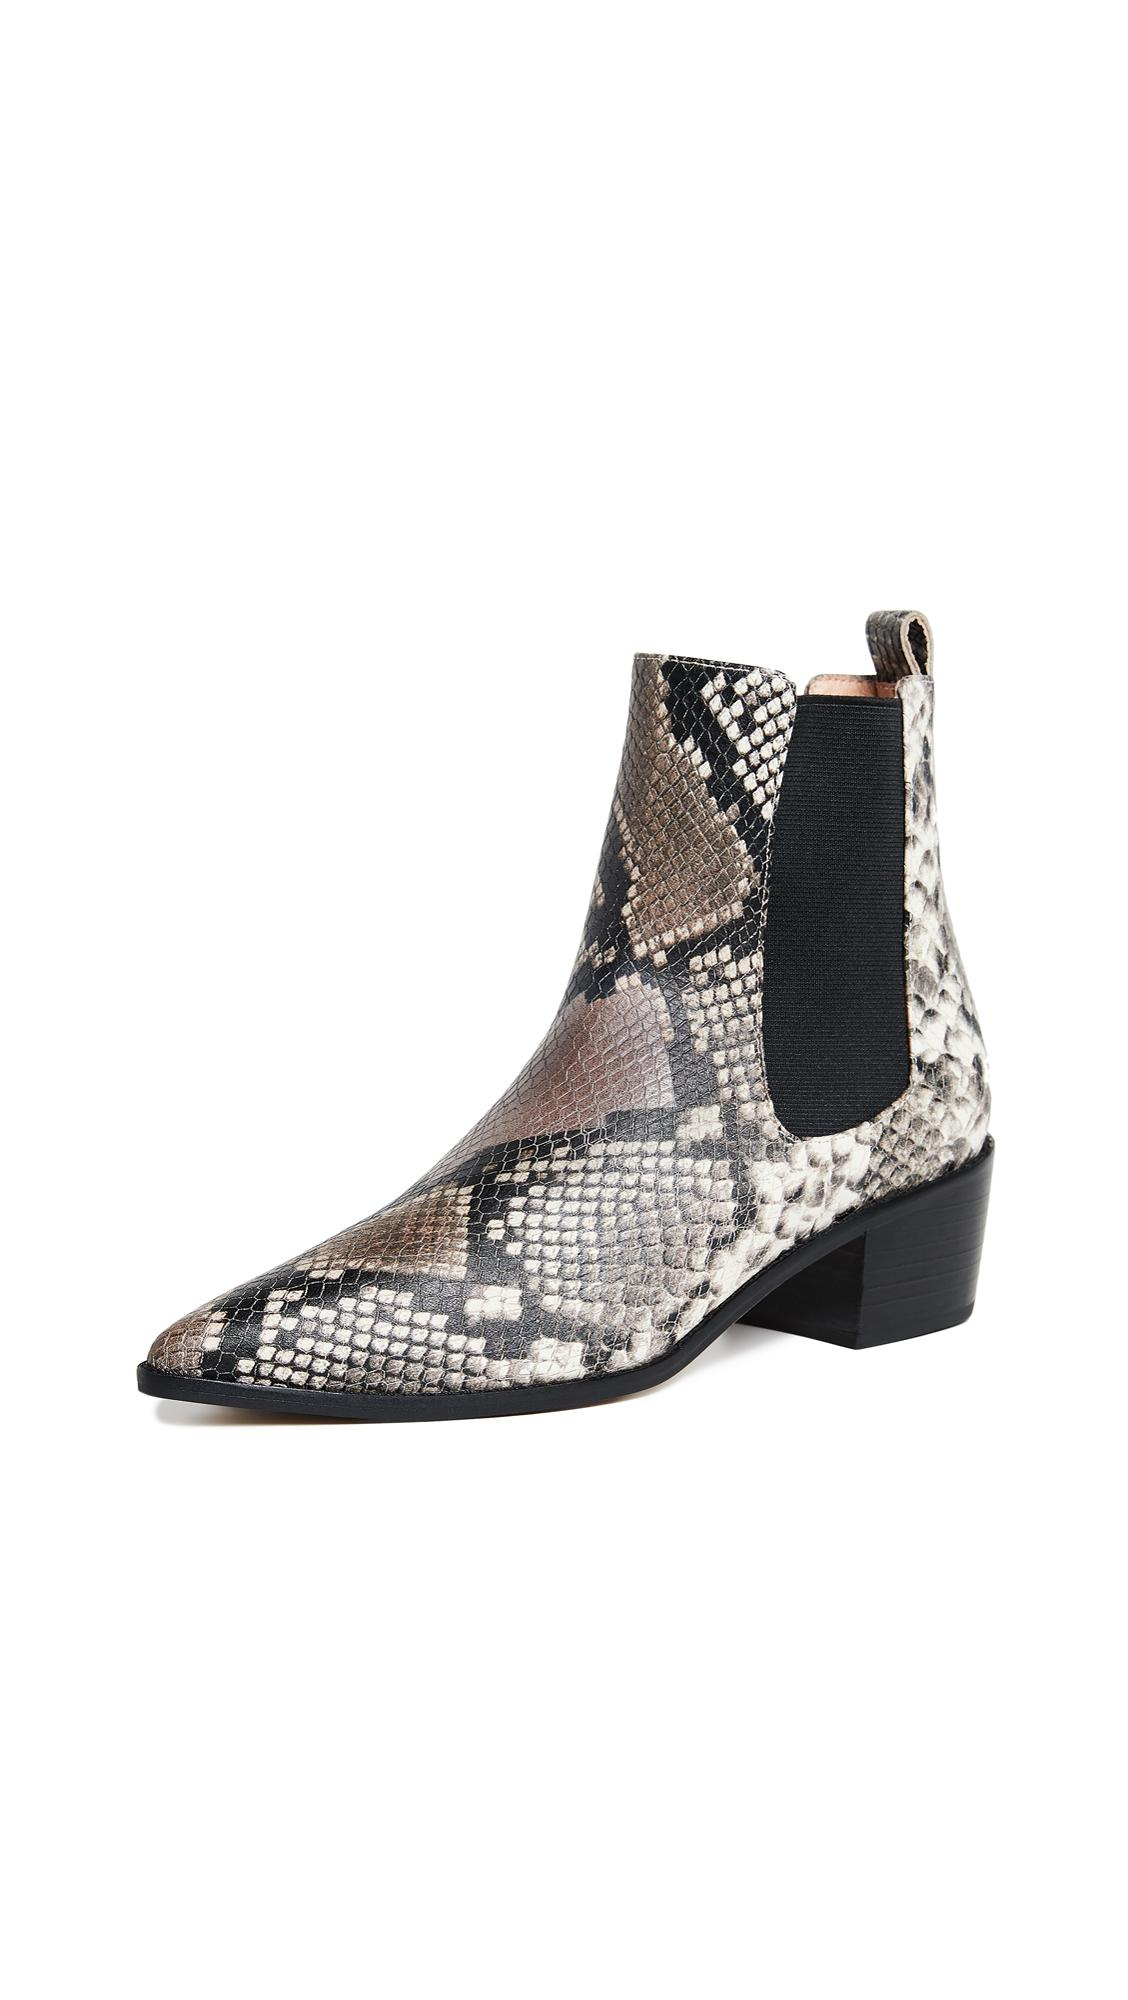 1ab63dd6a76 Matiko Jillian Point Toe Booties In Natural Python Printed Snake ...